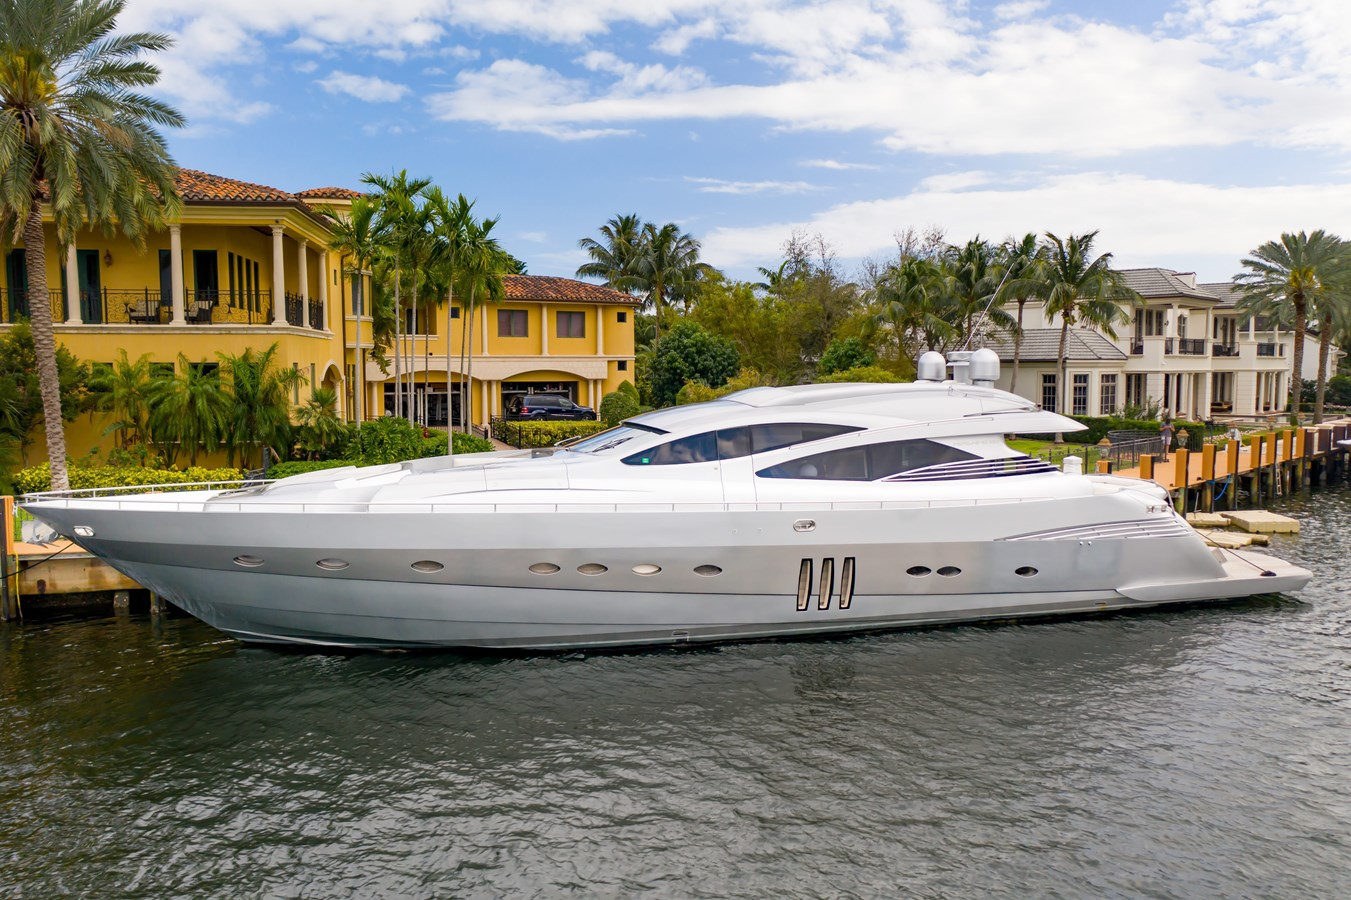 Pershing 90 2007 yacht for sale